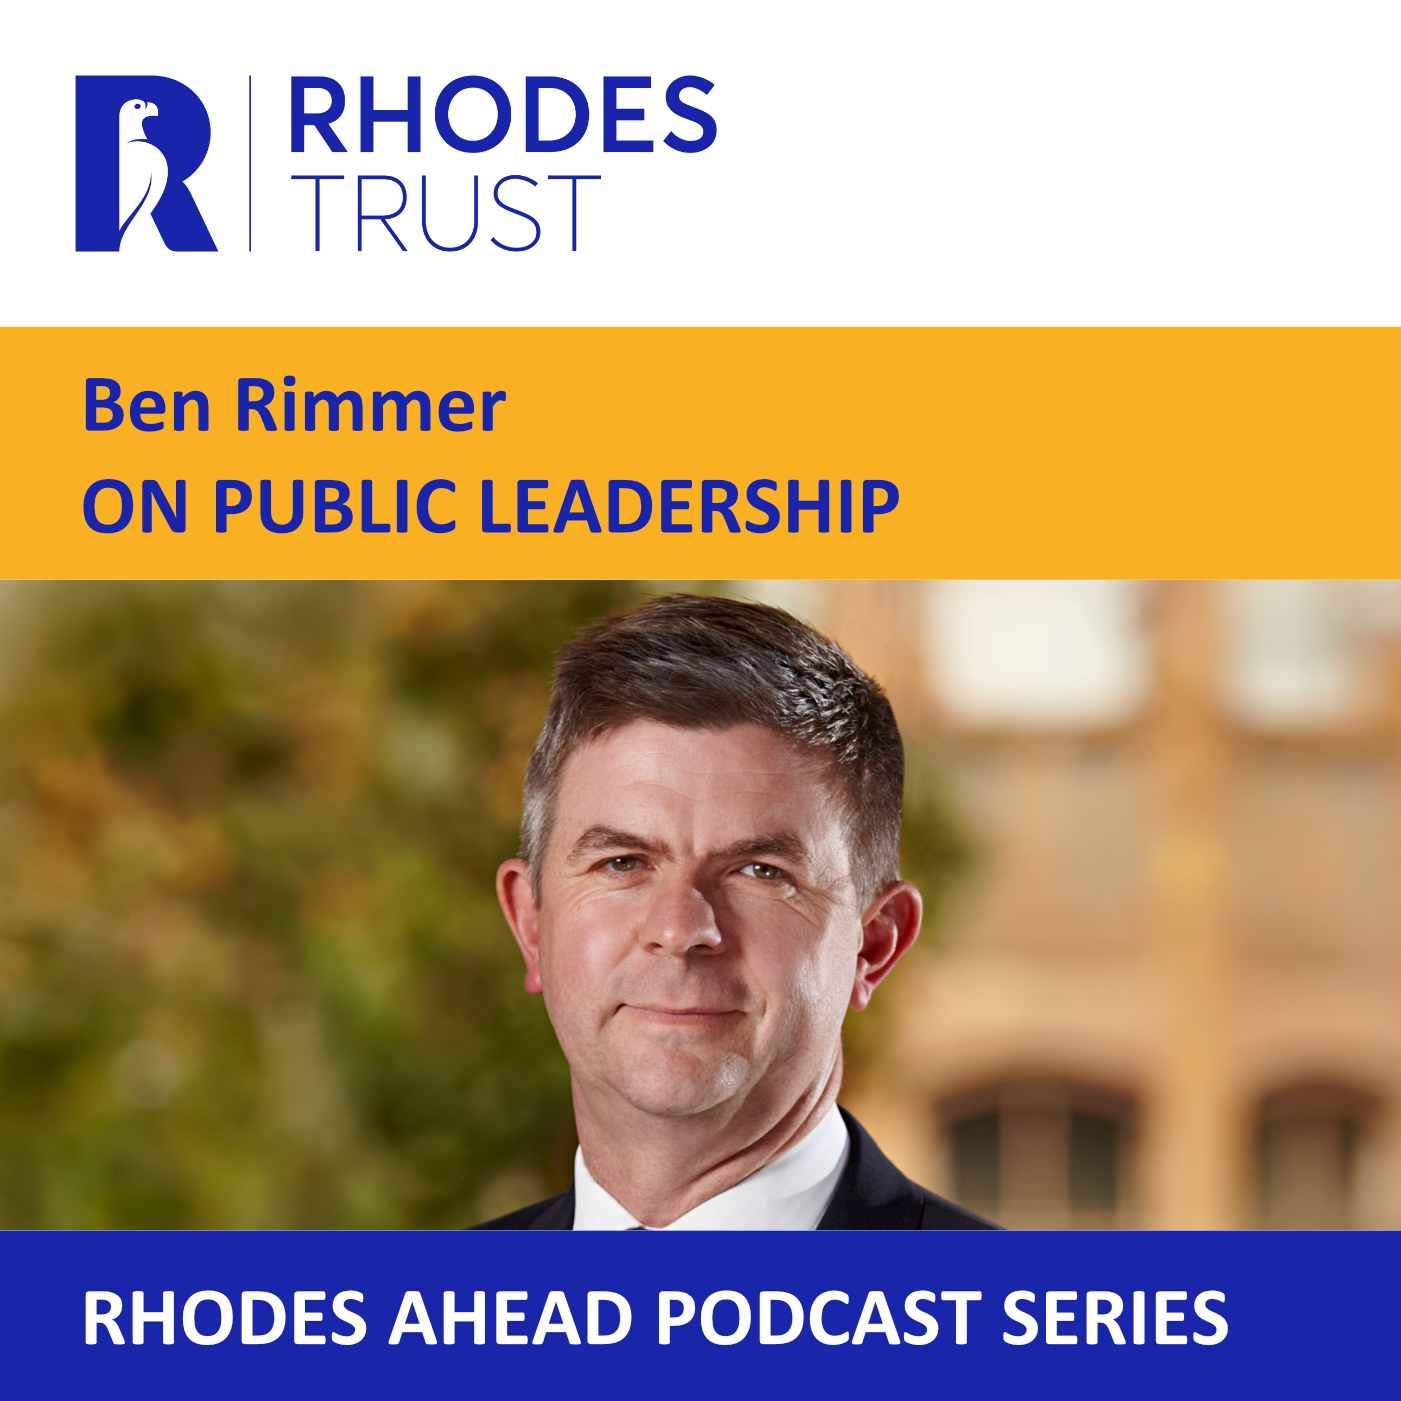 Ben Rimmer on Public Leadership